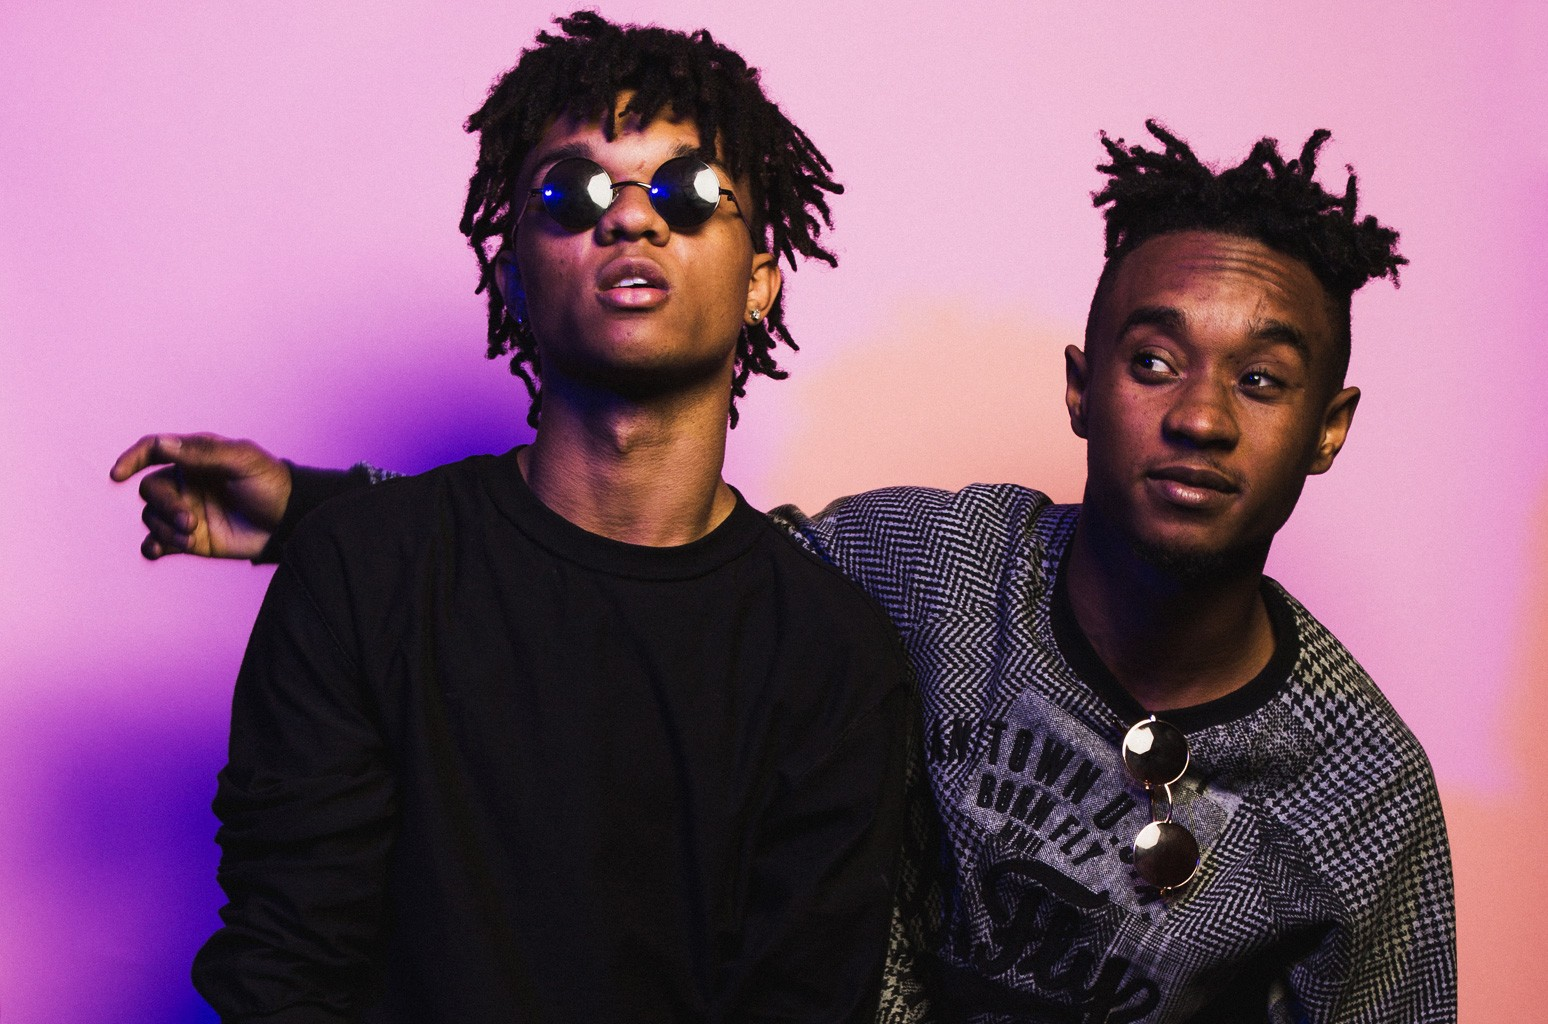 Swae Lee and Slim Jimmy of Rae Sremmurd pose for a portrait backstage at The Fader Fort Presented By Converse at Converse Rubber Tracks Studio in Brooklyn, New York.